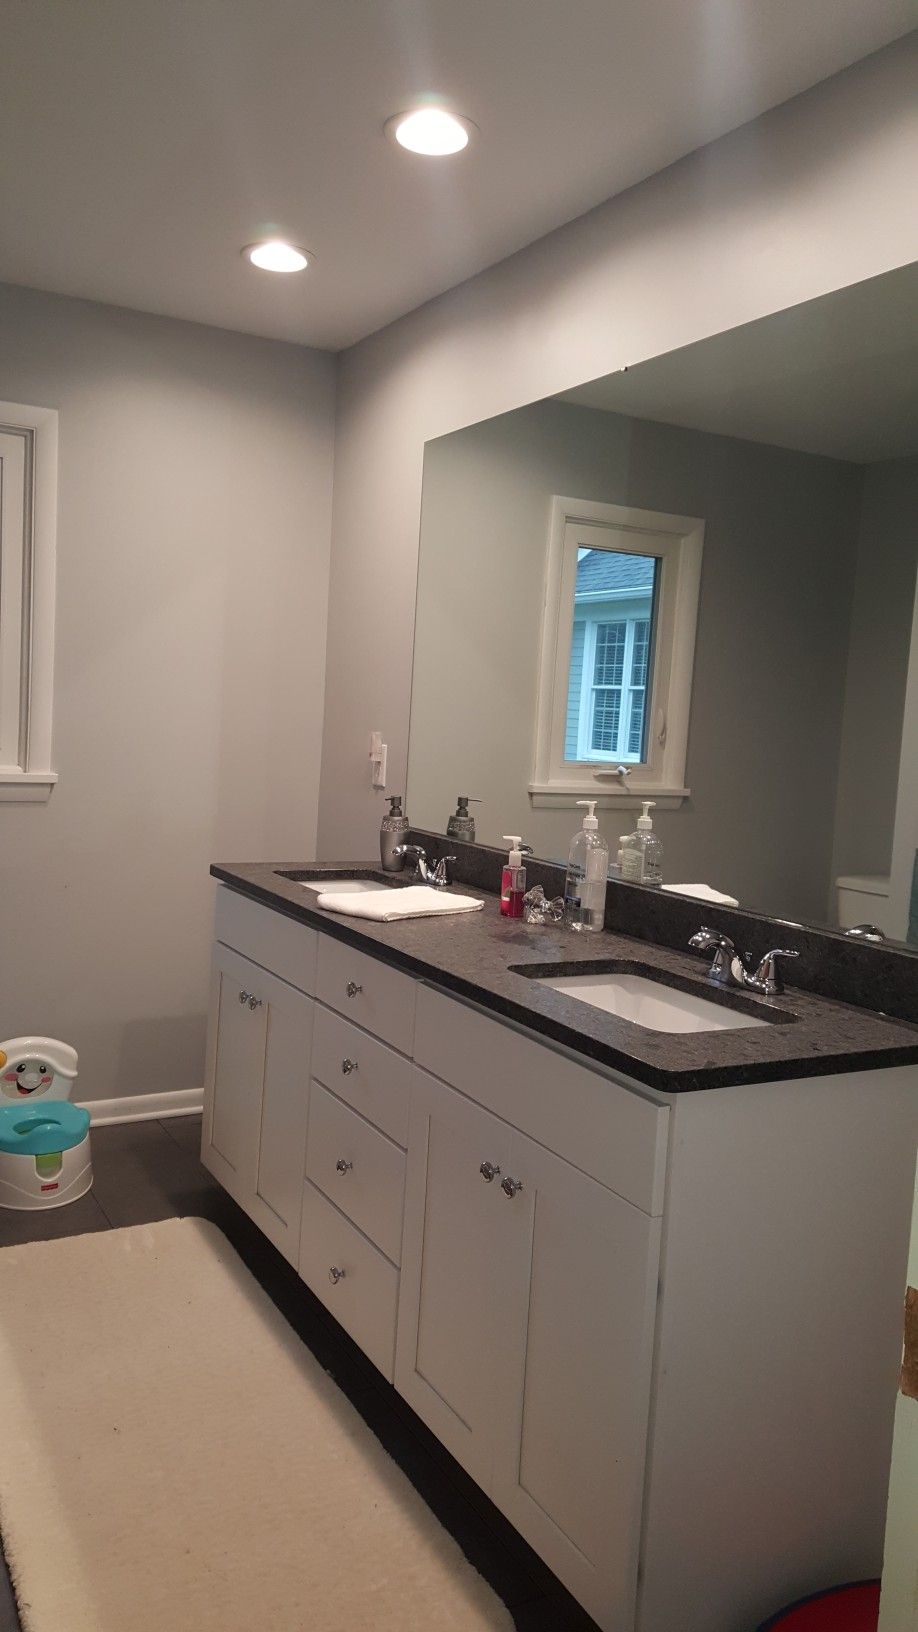 After bathroom remodel sherwin williams gray screen paint granite countertop 3 recessed lights above the vanity double sinks chrome fixtures